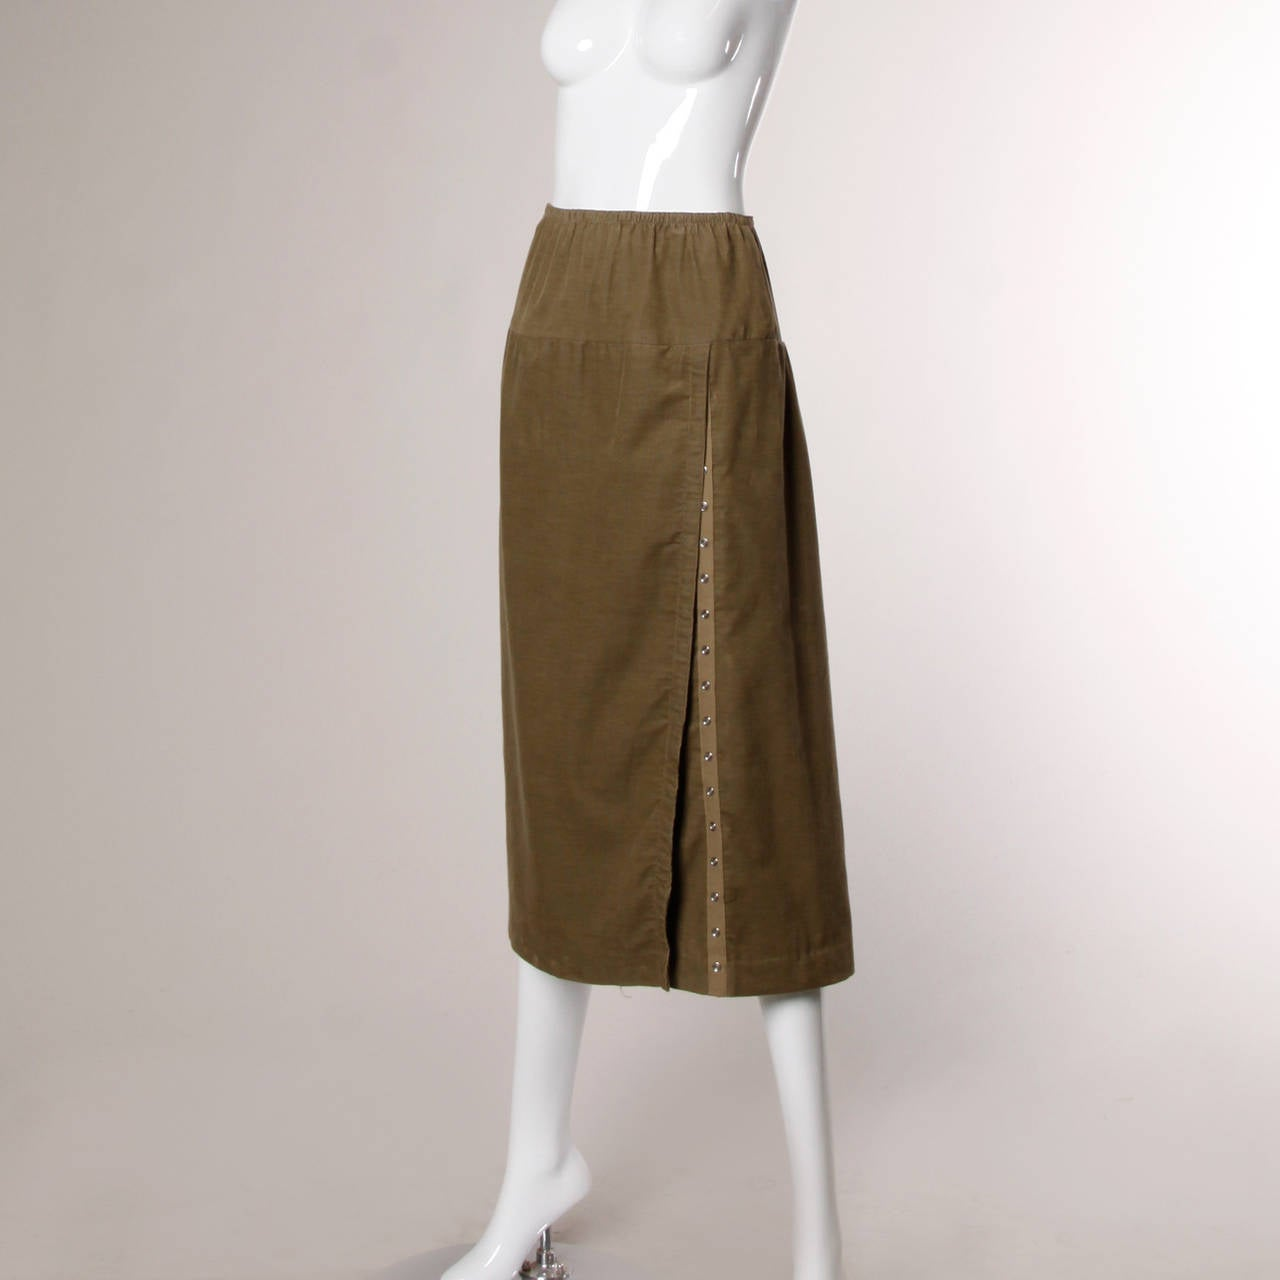 So avant garde and so Norma Kamali! This asymmetrical skirt features snap up detailing and light weight olive green corduroy.